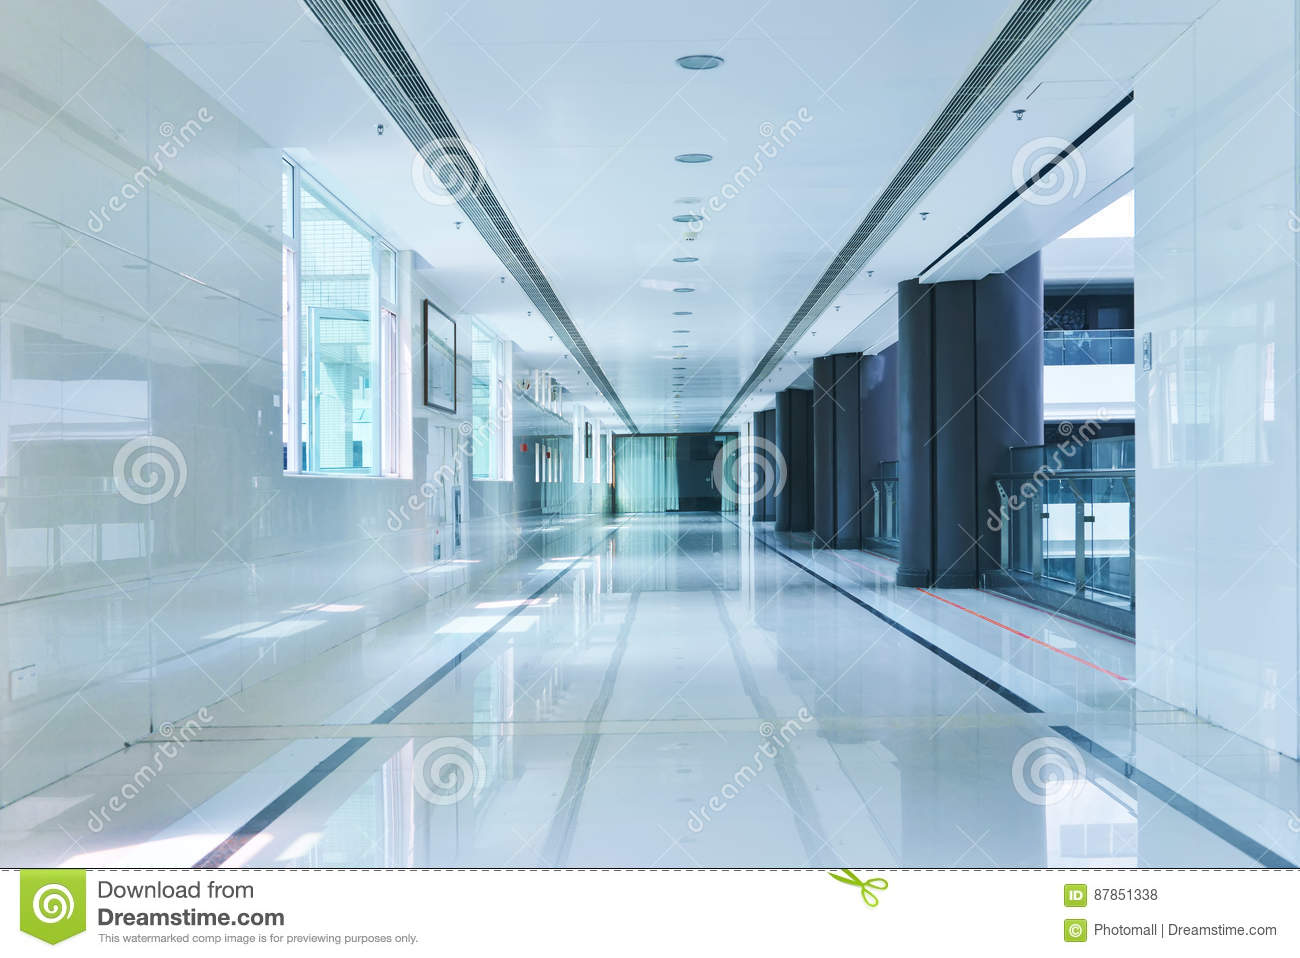 Corridor of modern office building